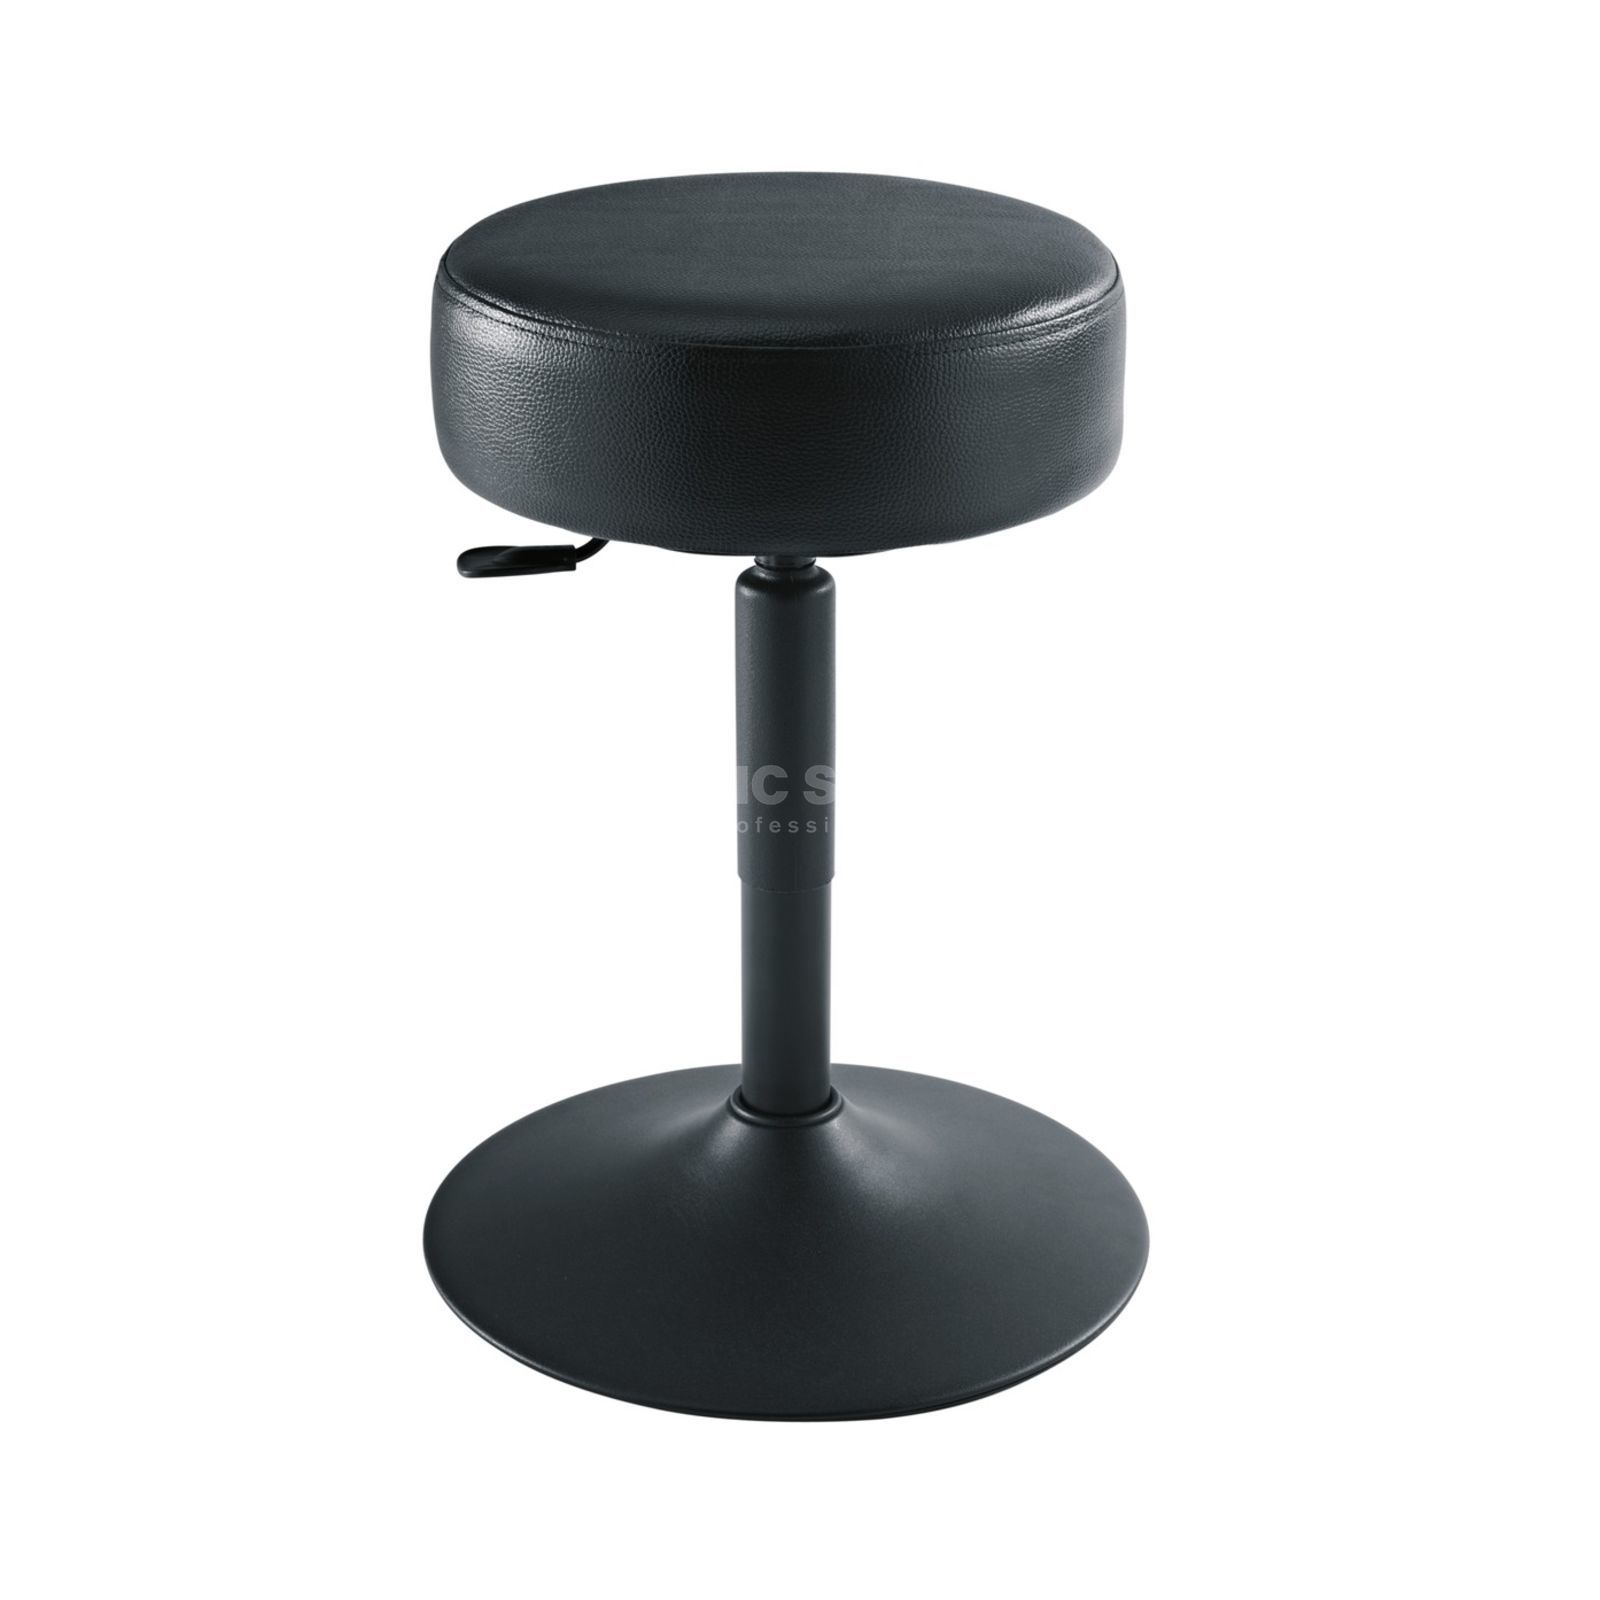 König & Meyer 14092 Piano Stool black Produktbillede